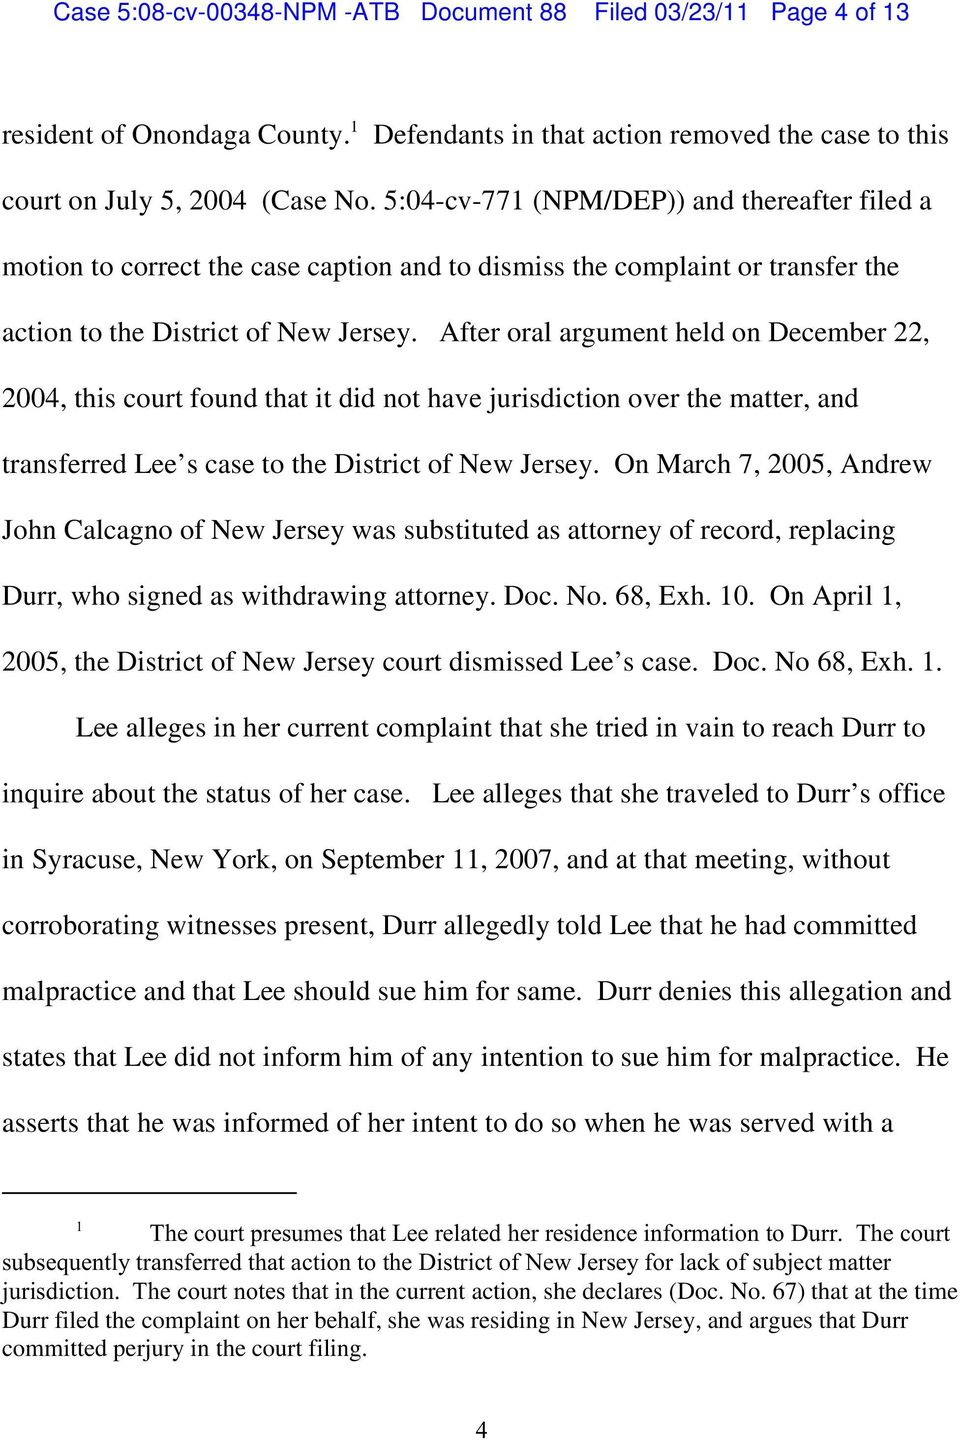 After oral argument held on December 22, 2004, this court found that it did not have jurisdiction over the matter, and transferred Lee s case to the District of New Jersey.